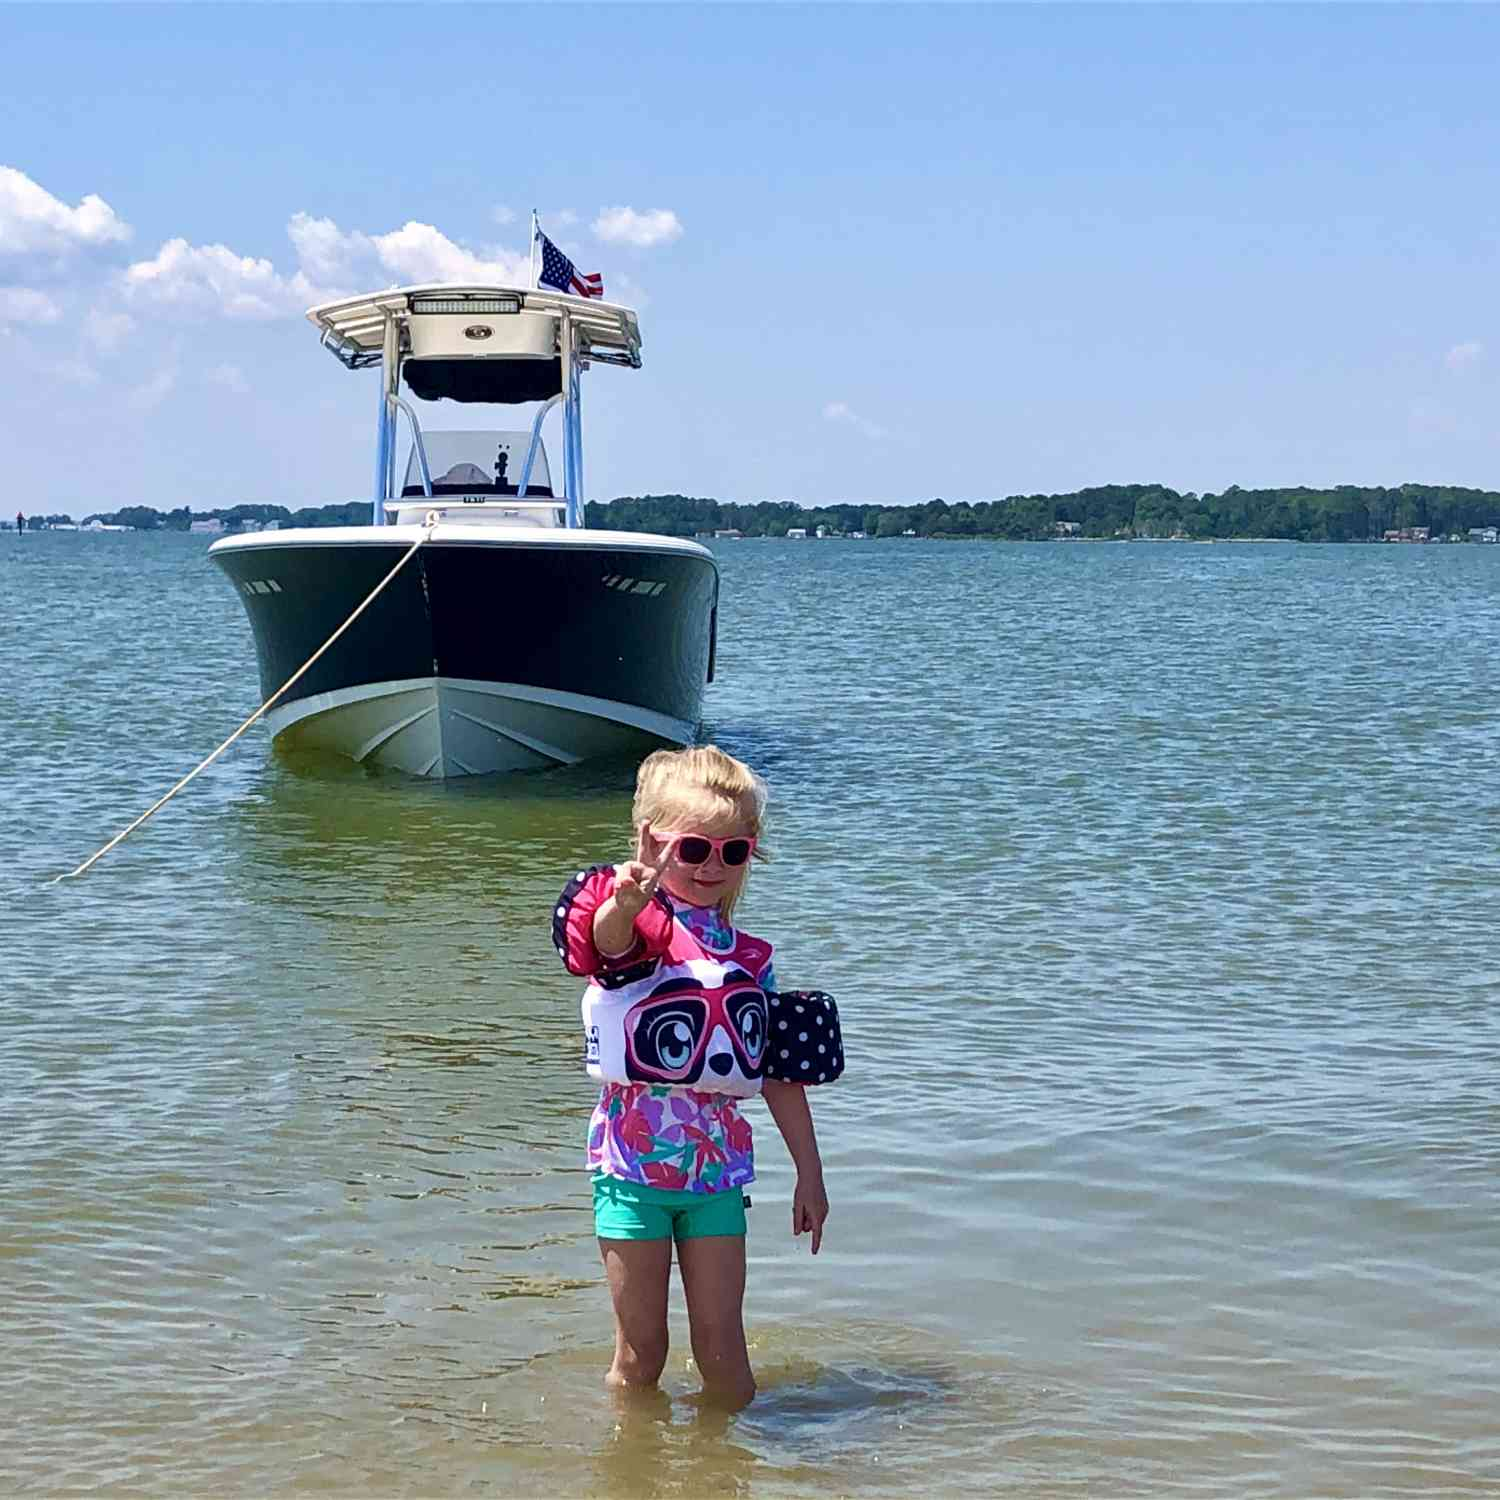 Title: Deuces - On board their Sportsman Heritage 231 Center Console - Location: Gwynns Island VA. Participating in the Photo Contest #SportsmanJune2021